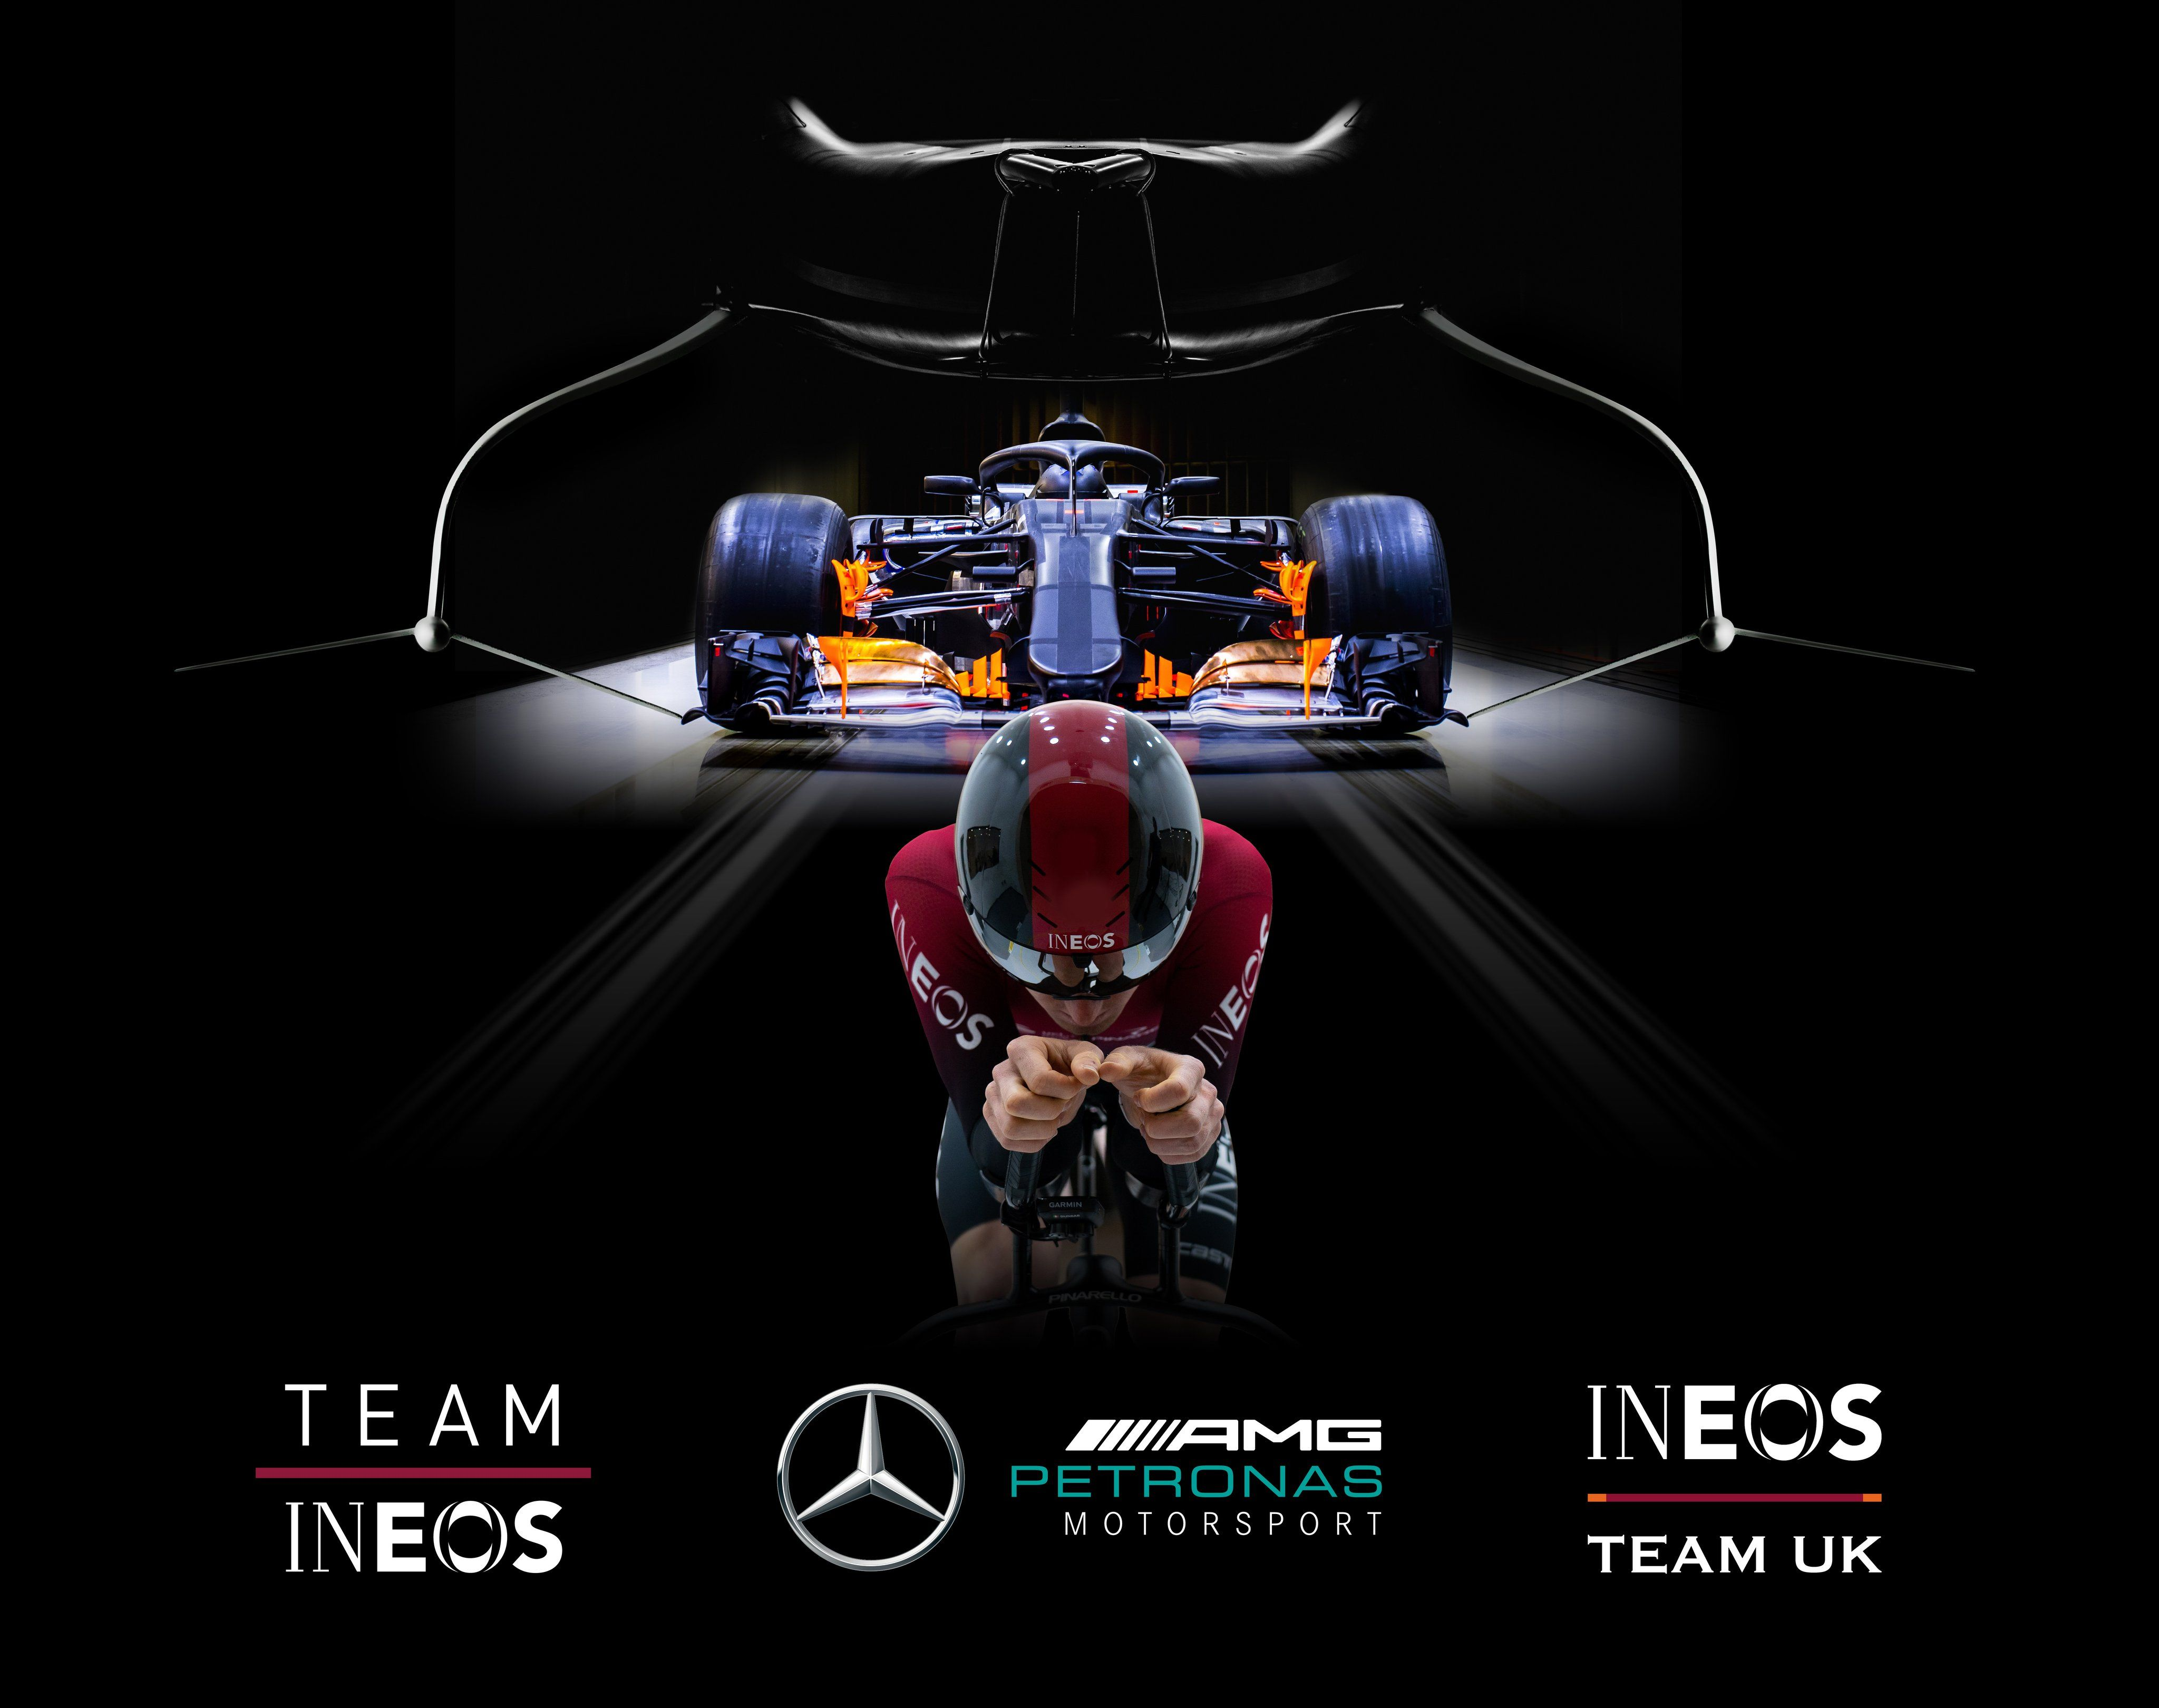 Mercedes sees three core benefits from Team INEOS partnership